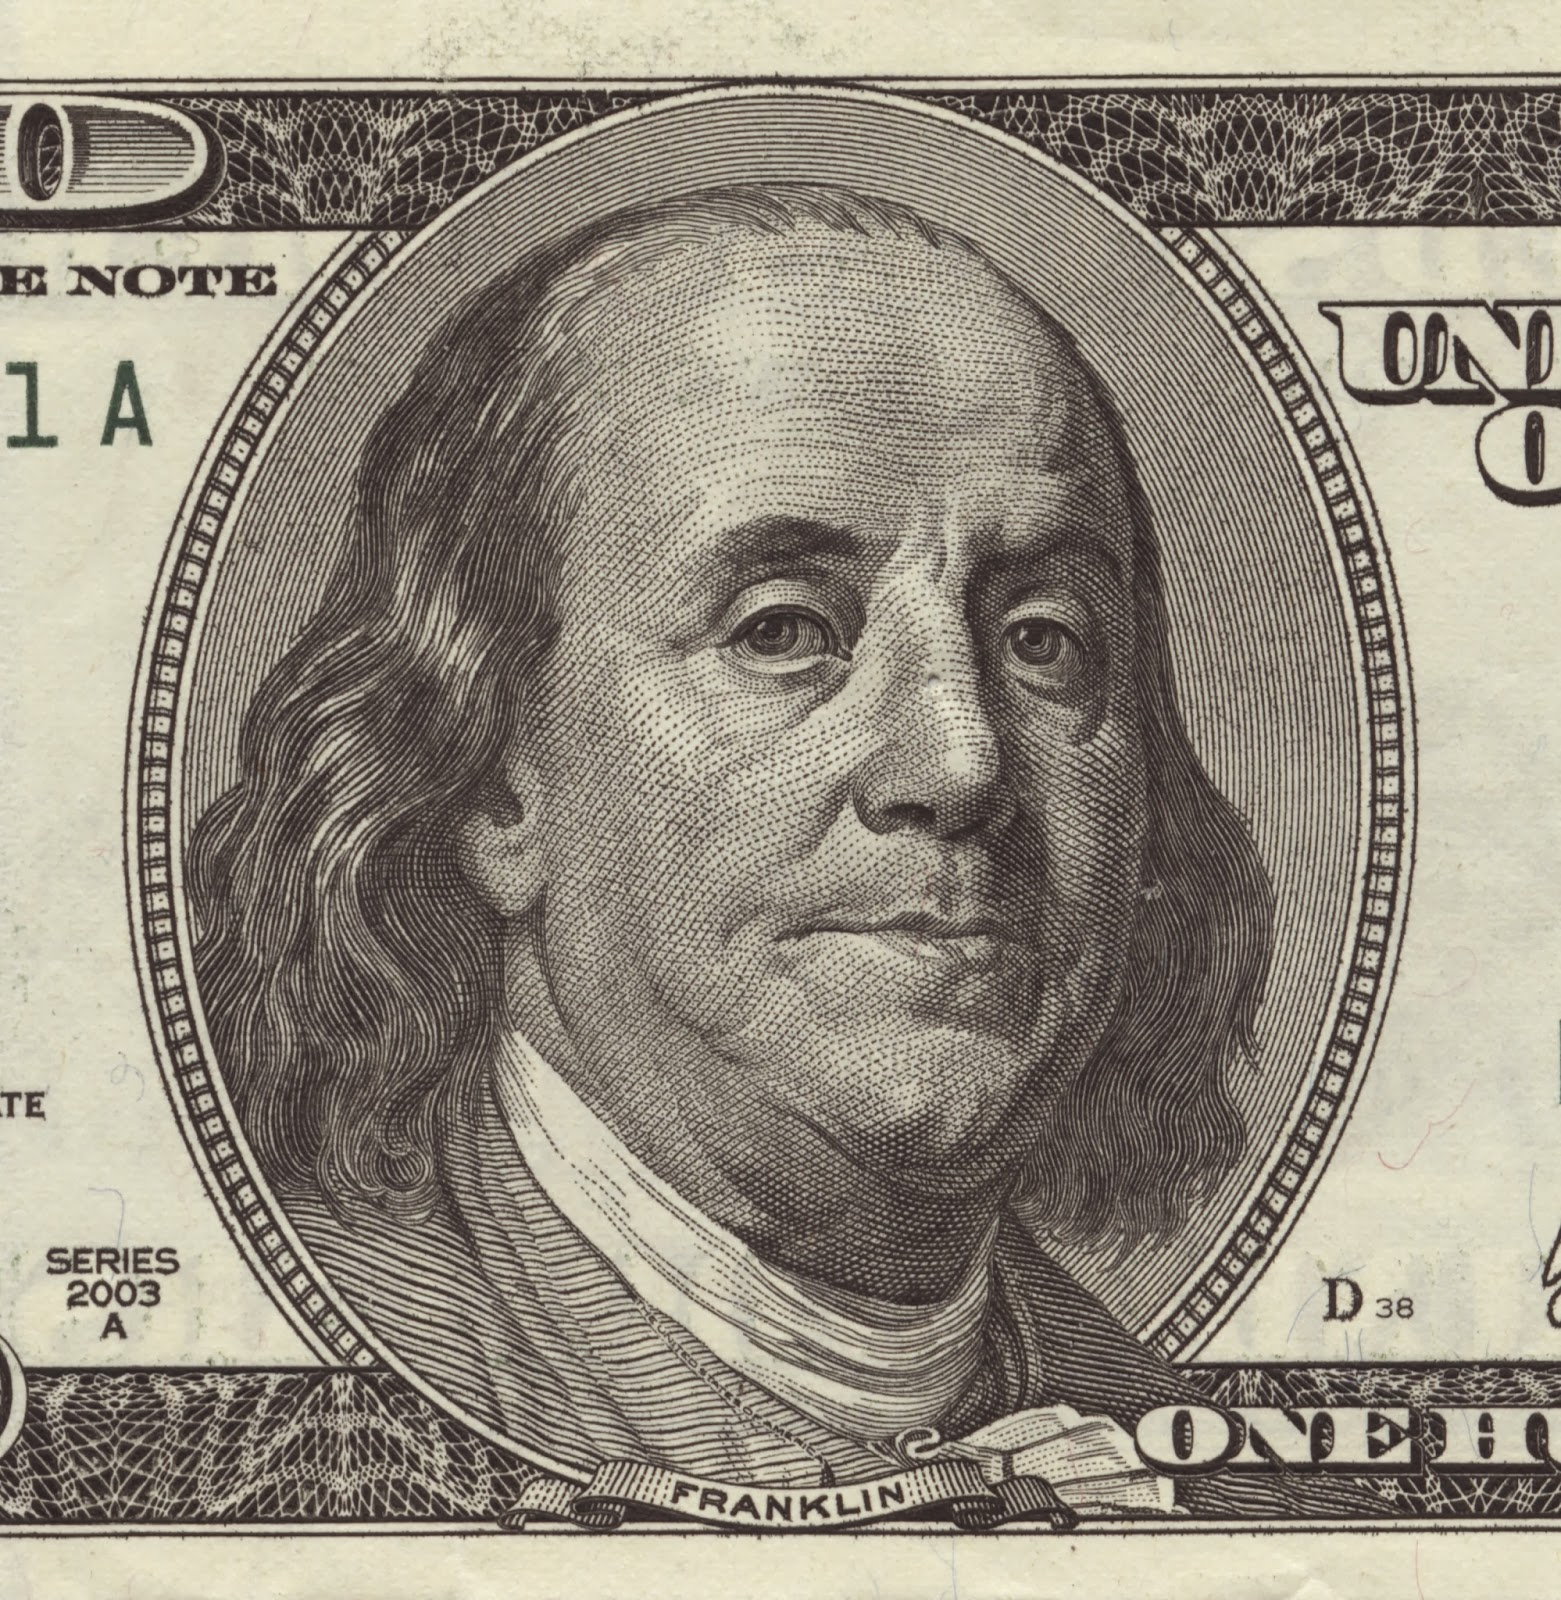 benjamin franklin essay on farts 91 121 113 106 benjamin franklin essay on farts